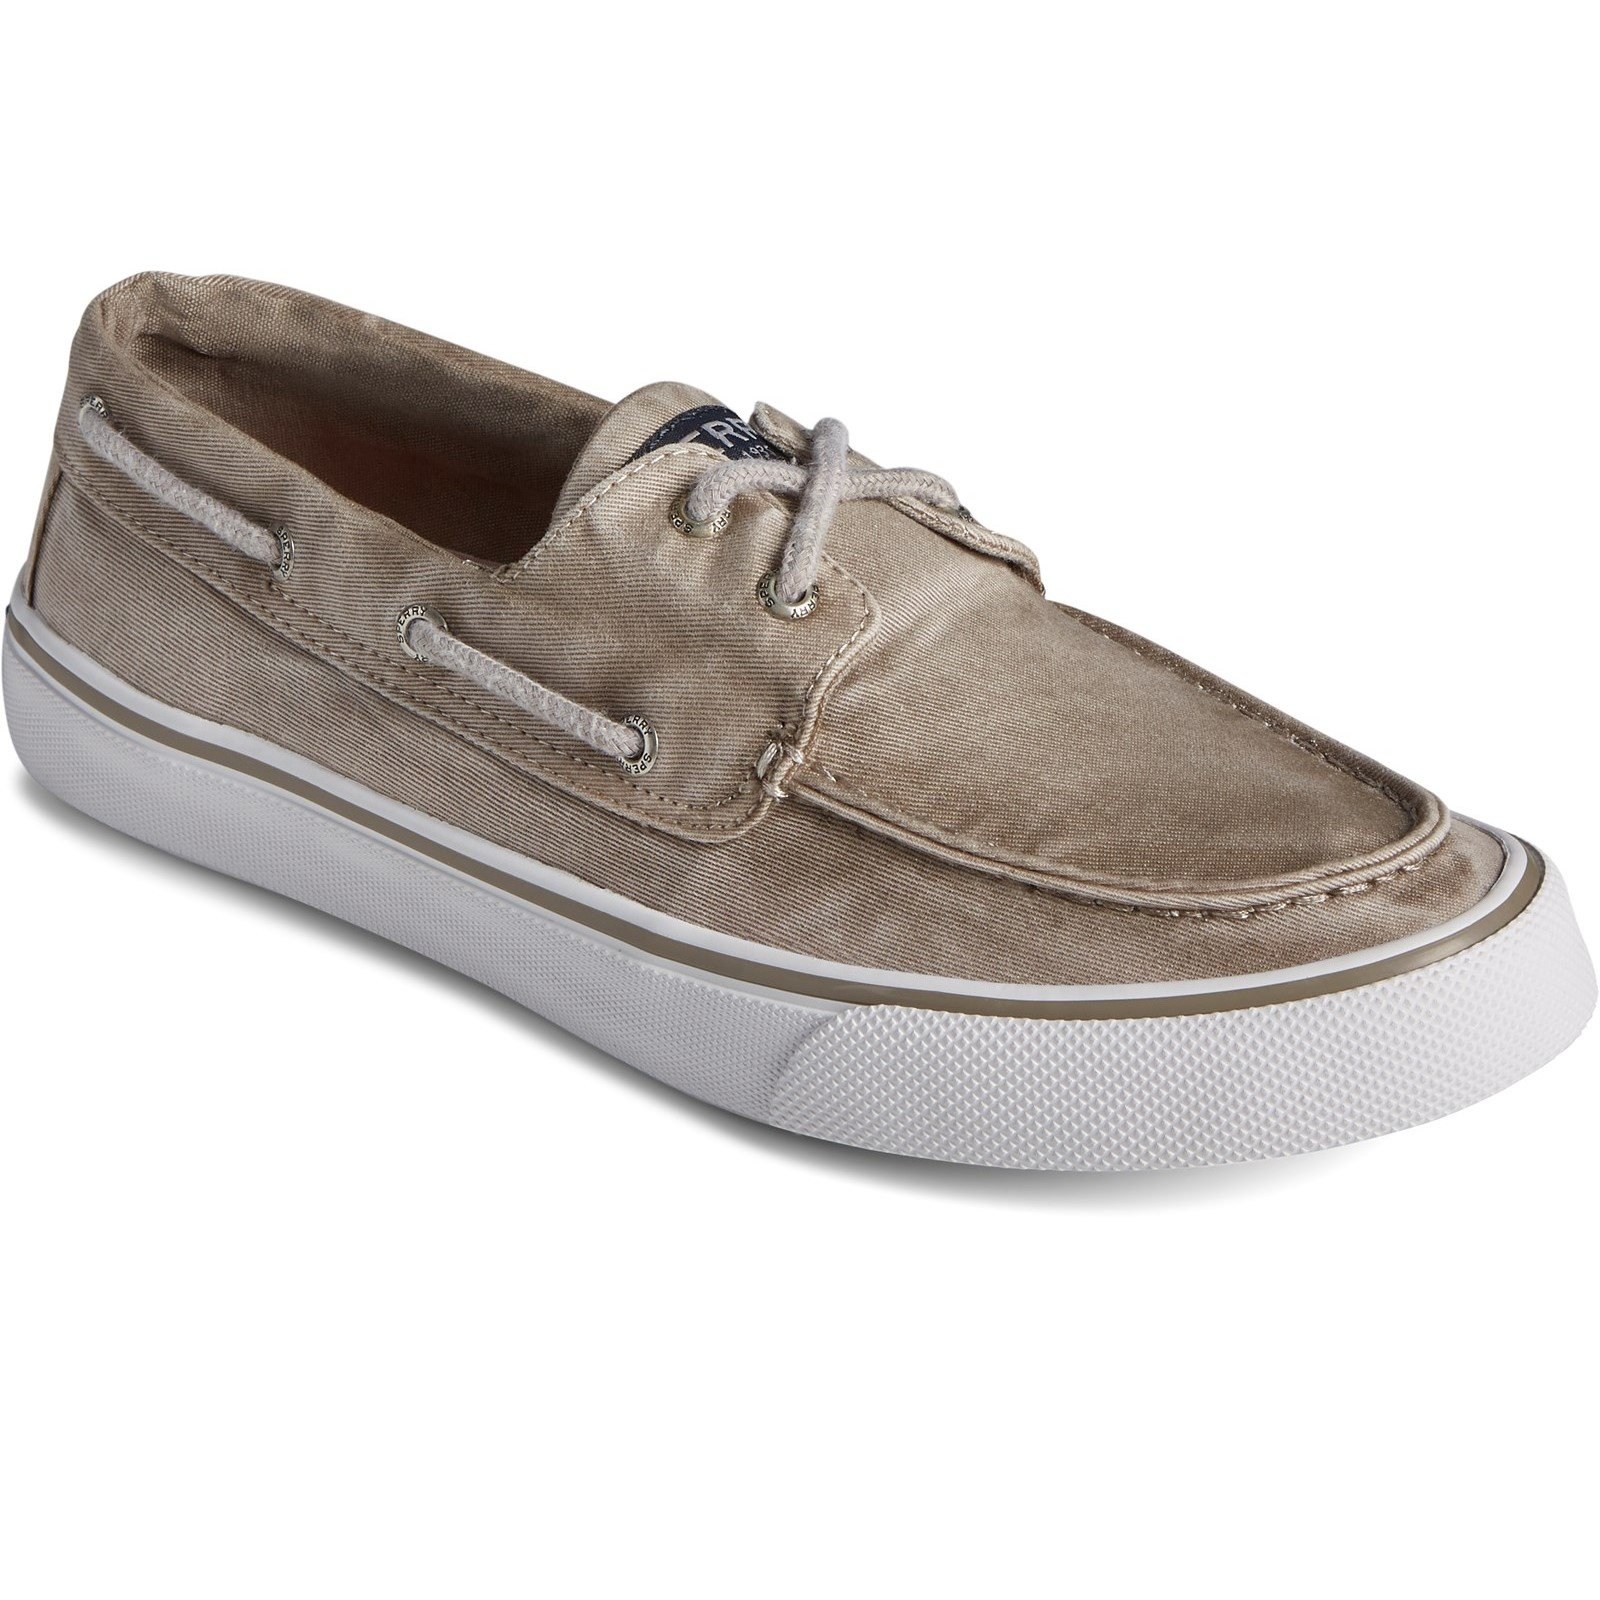 Sperry Men's Bahama II Boat Shoe Various Colours 32923 - Taupe 9.5